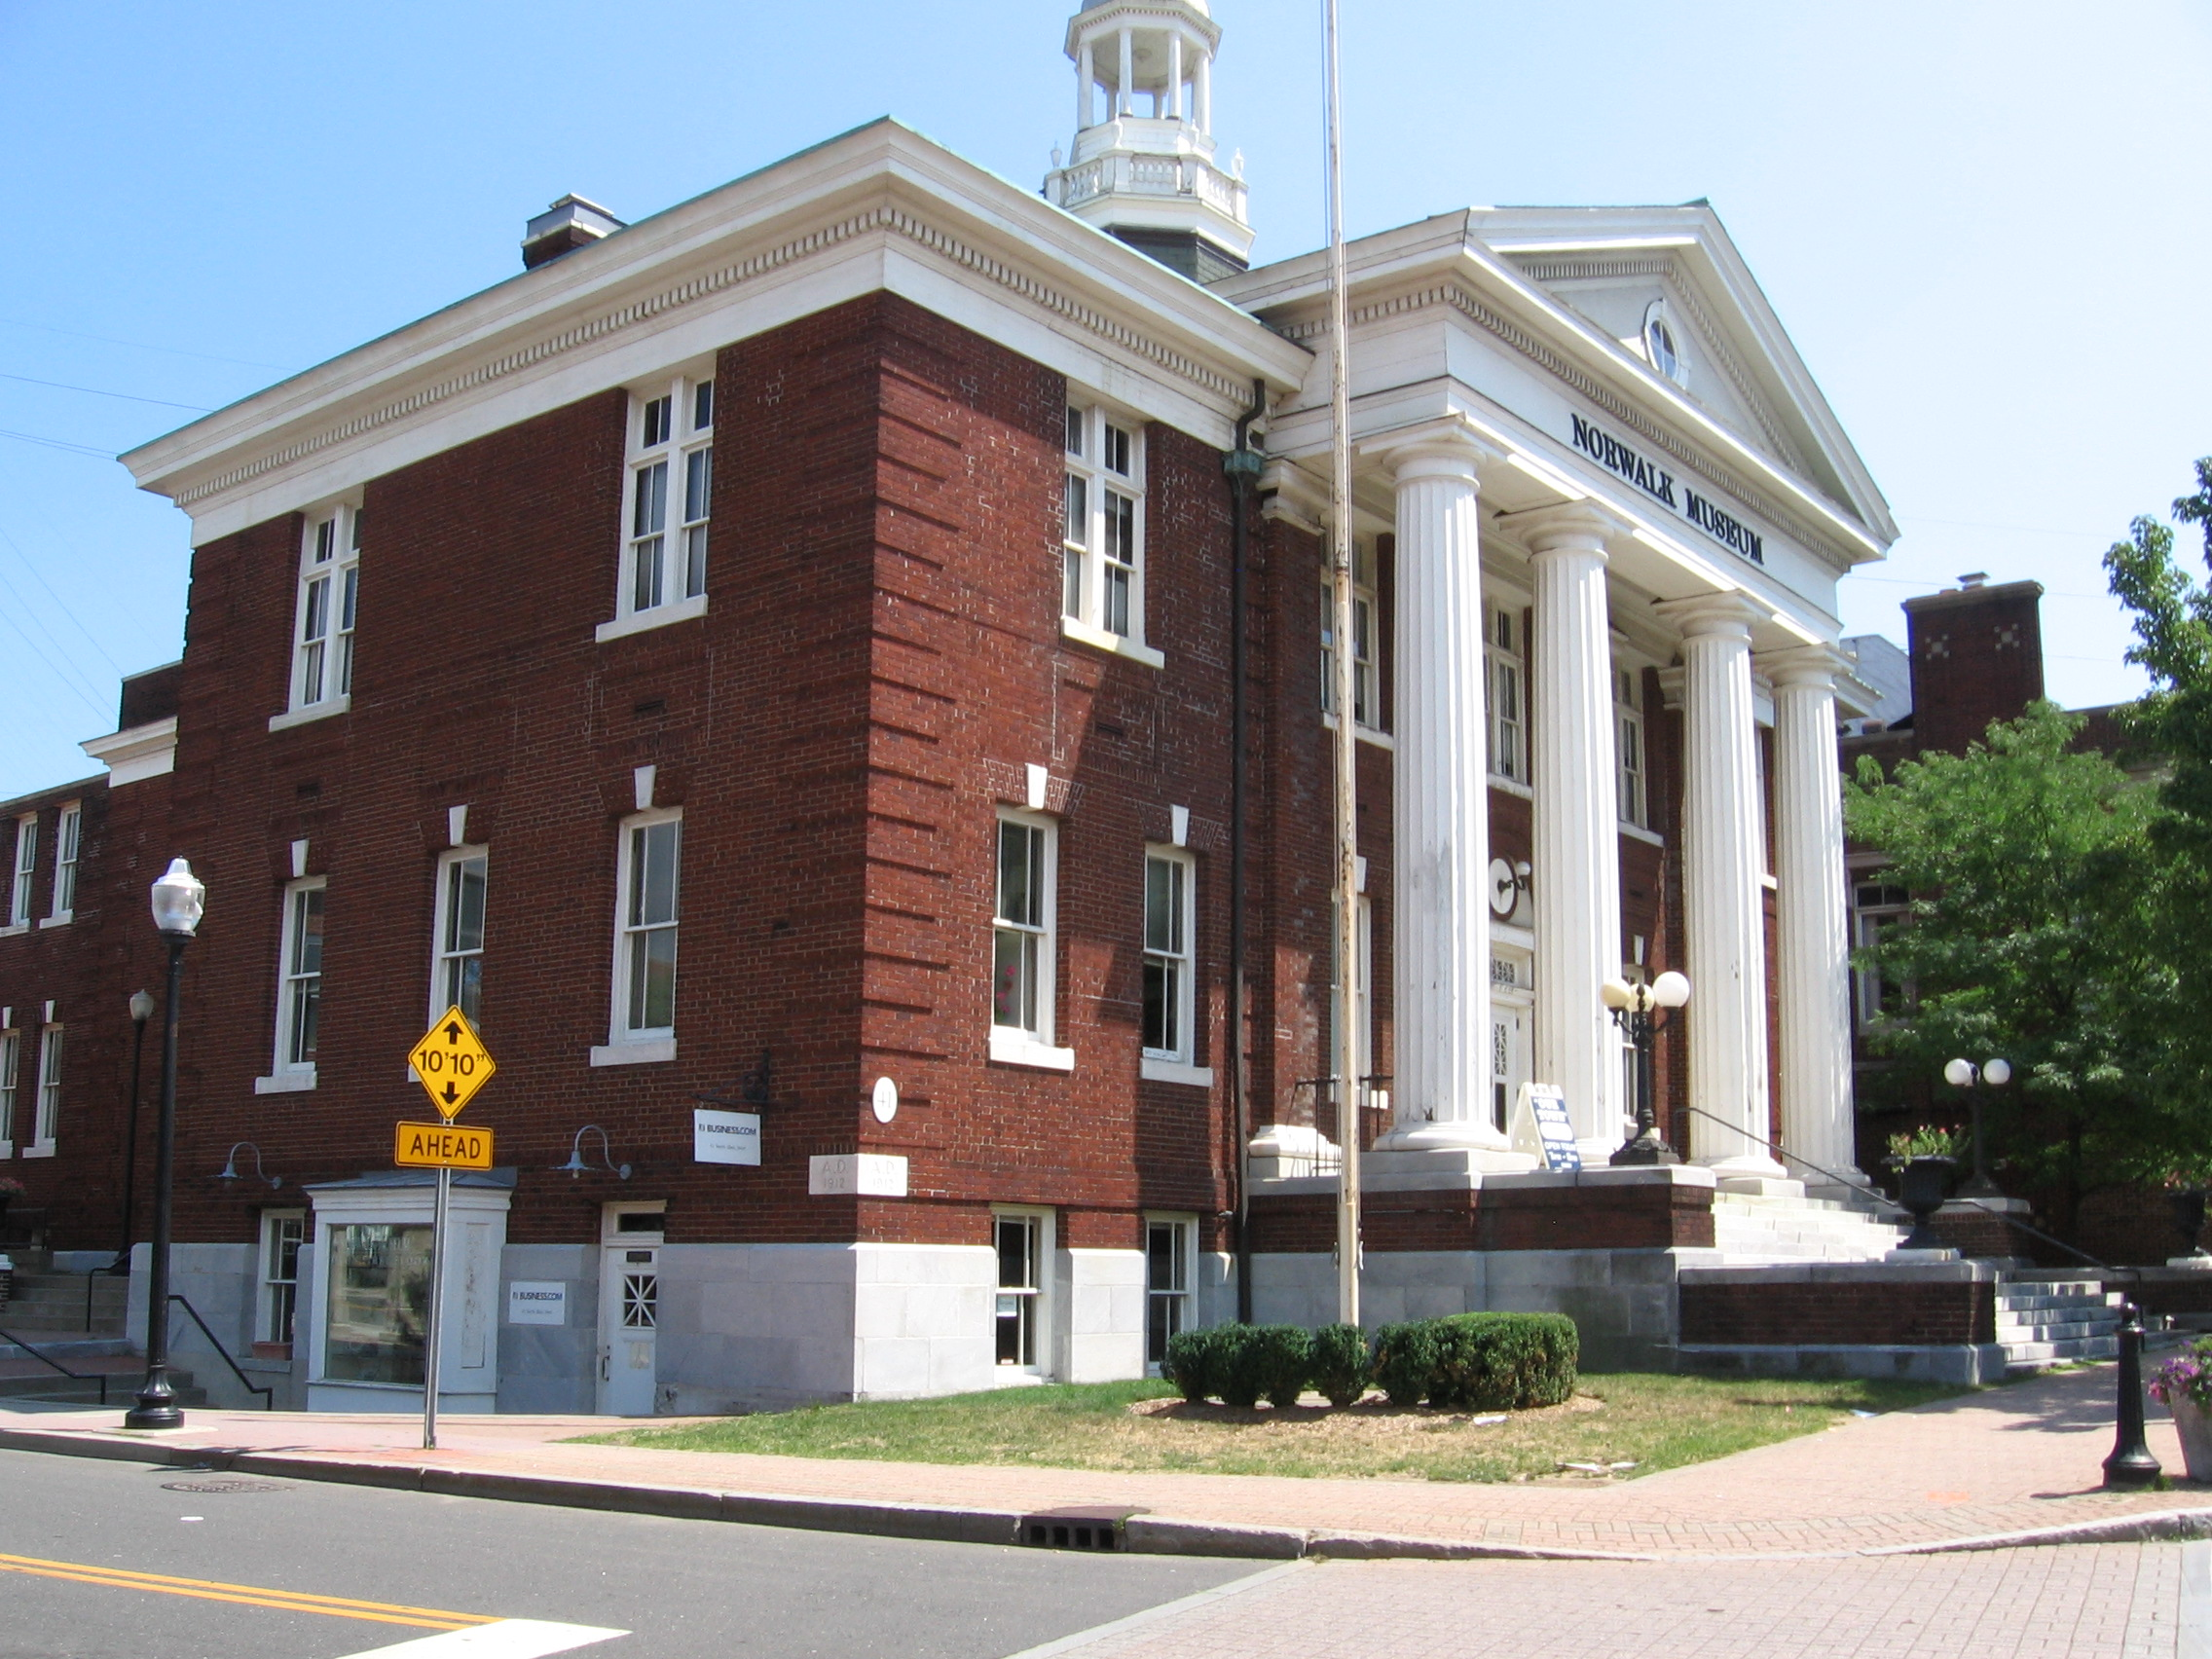 https://assets.sourcemedia.com/d7/60/1b81f29d47dd82af31bfd9eb561f/norwalk-museum-formerly-town-hall.JPG